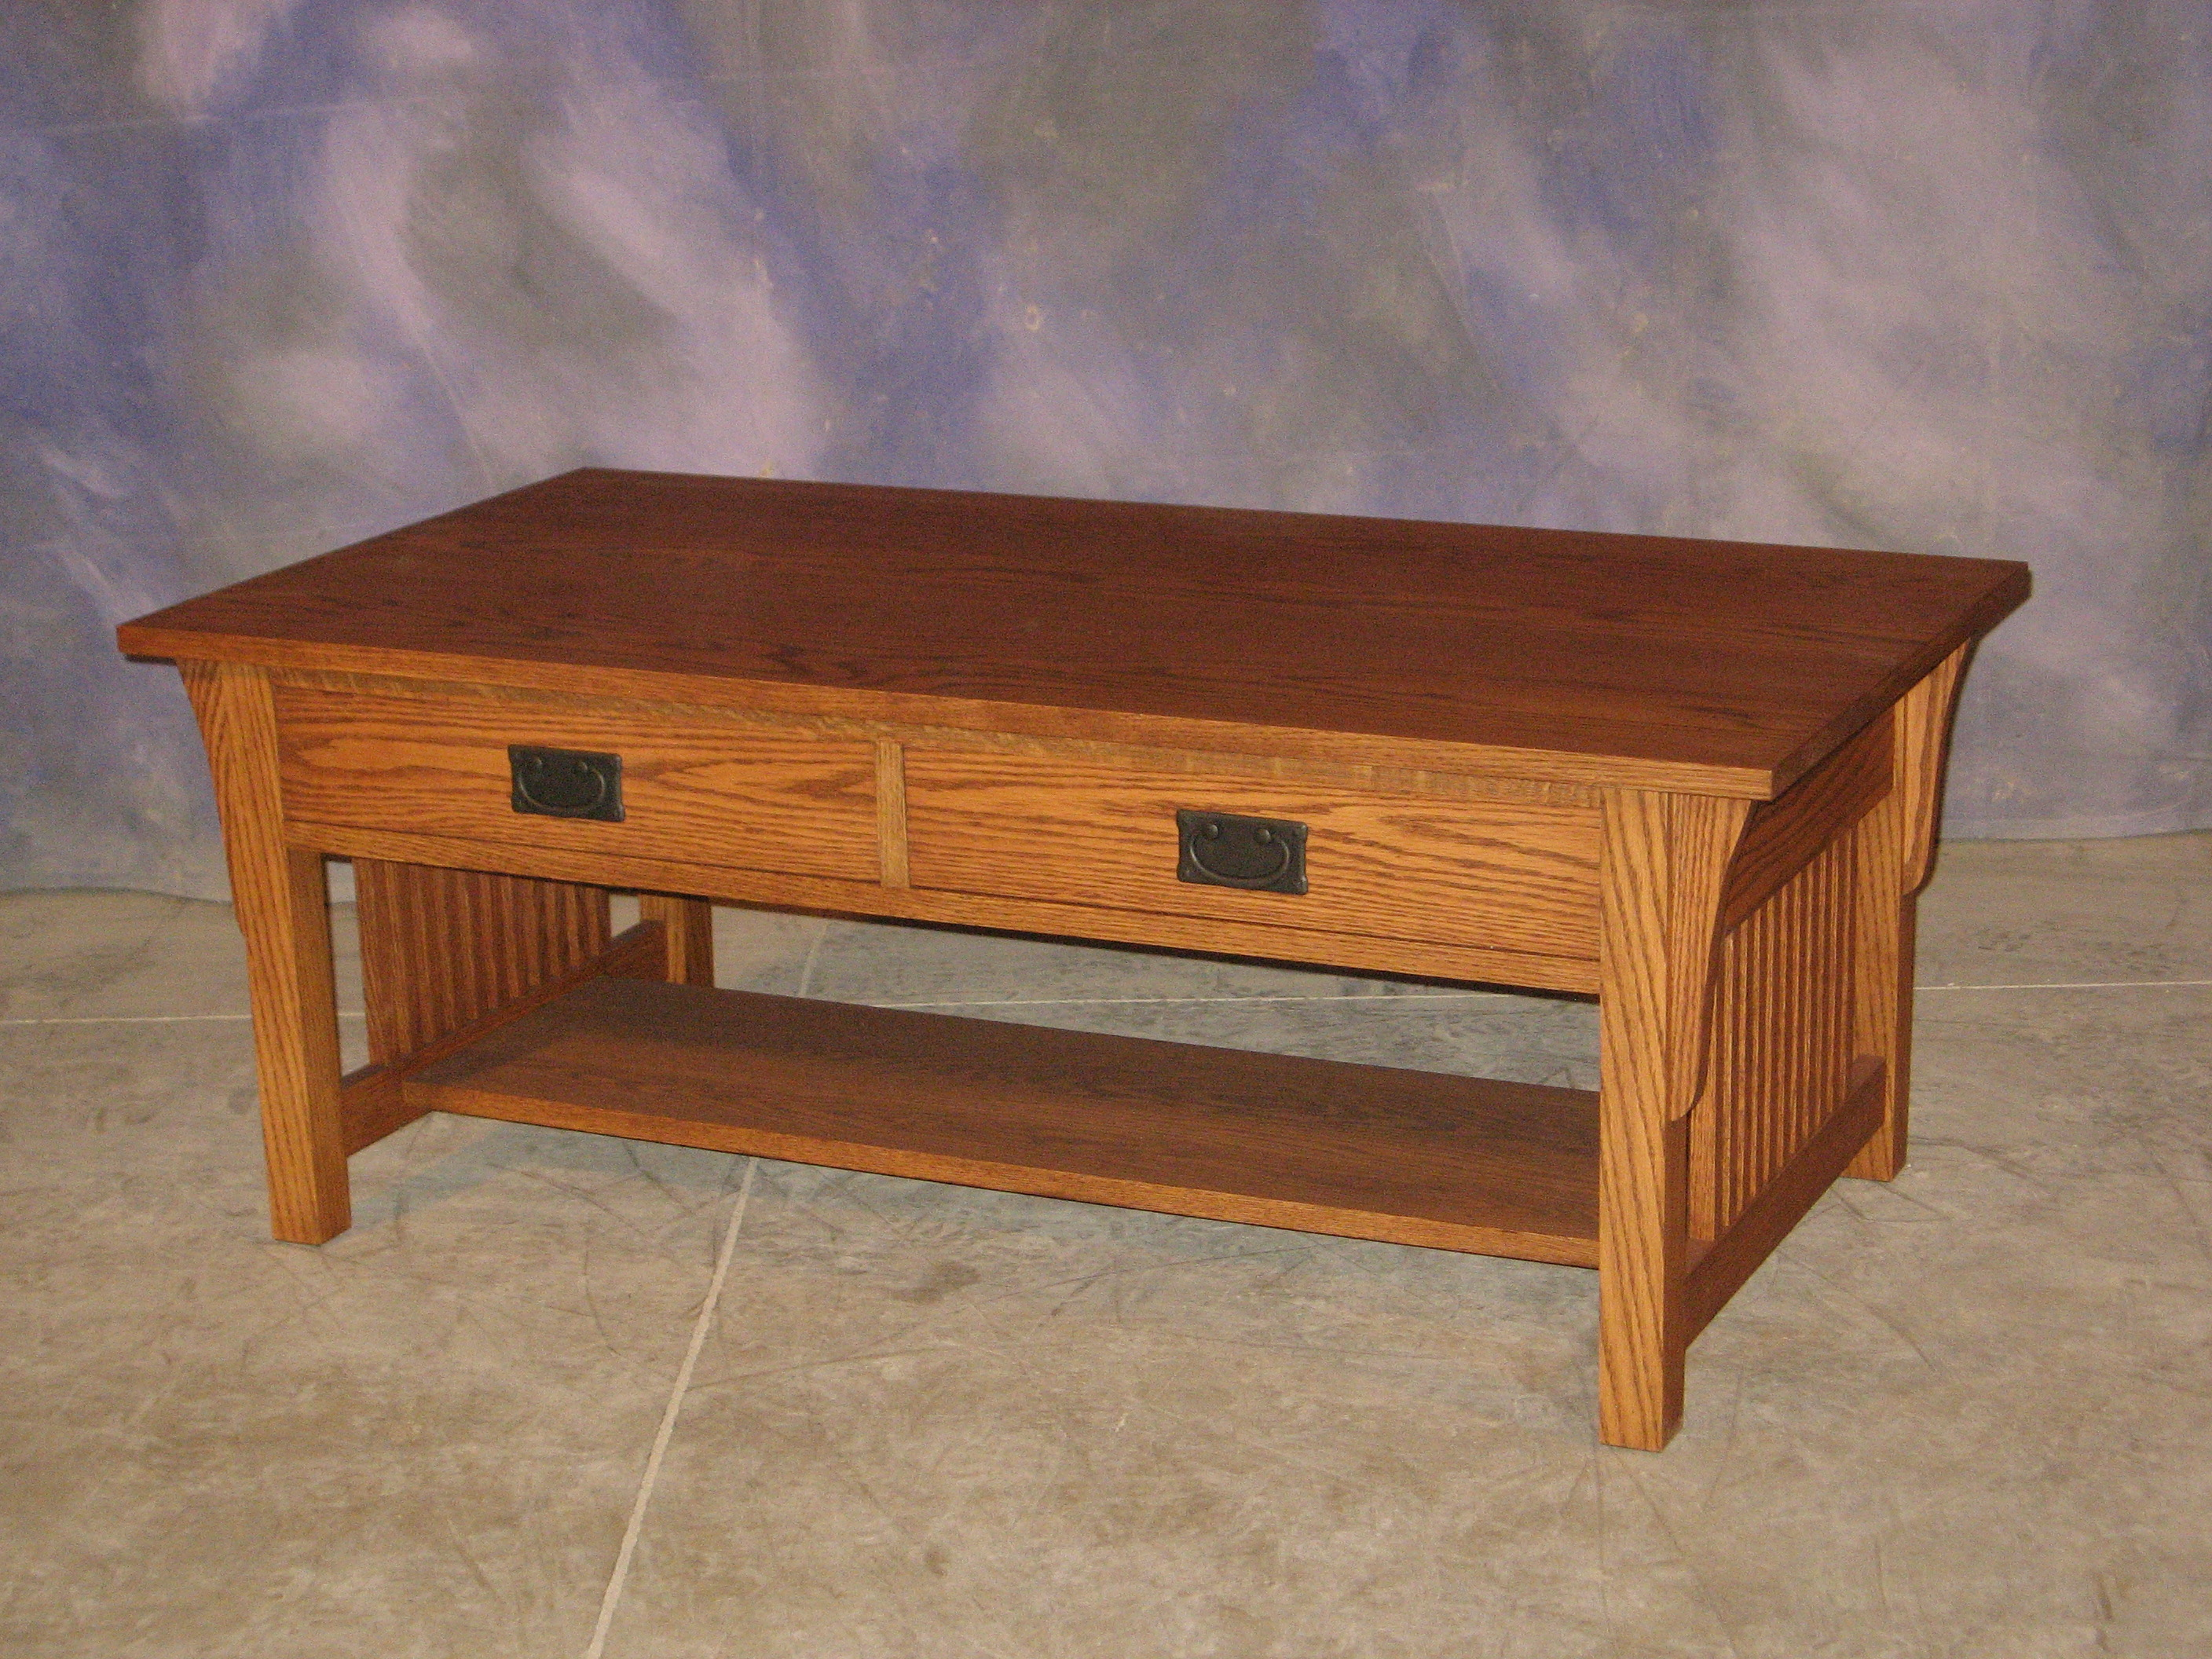 Mission coffee table schanz furniture and refinishing mission coffee table geotapseo Images